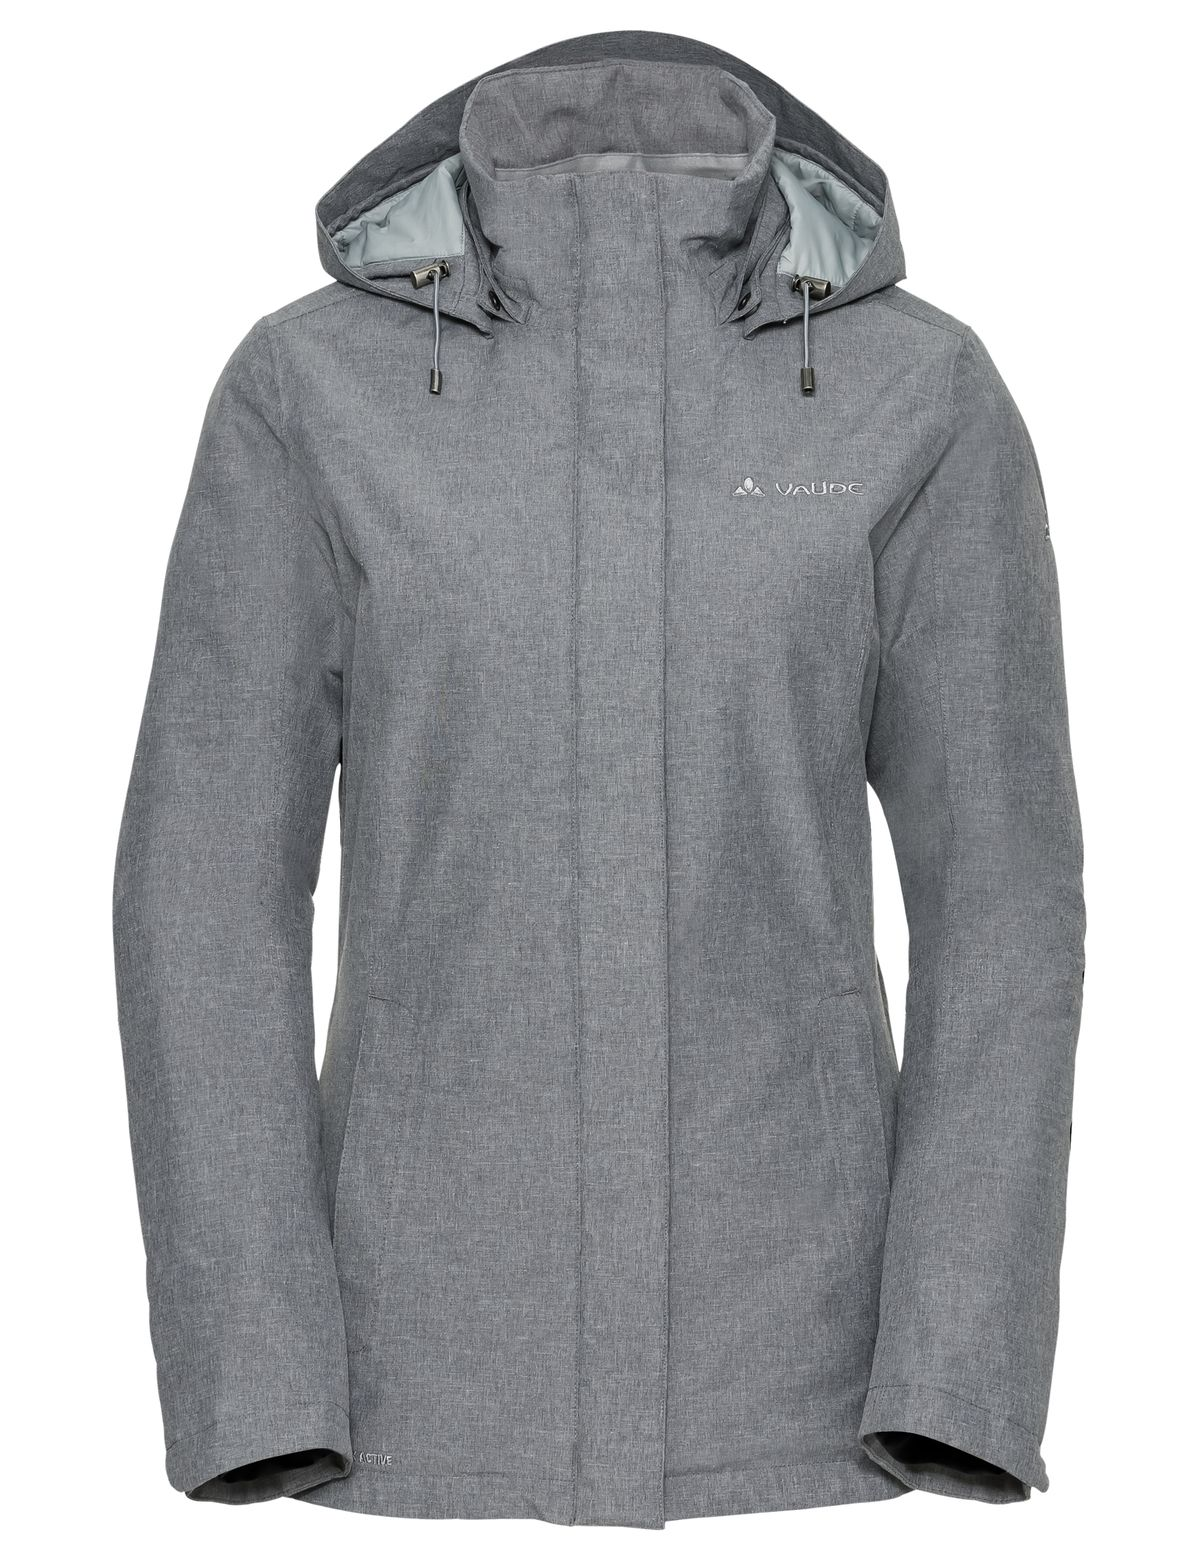 competitive price 06c3a 92d56 Women's Limford Jacket II